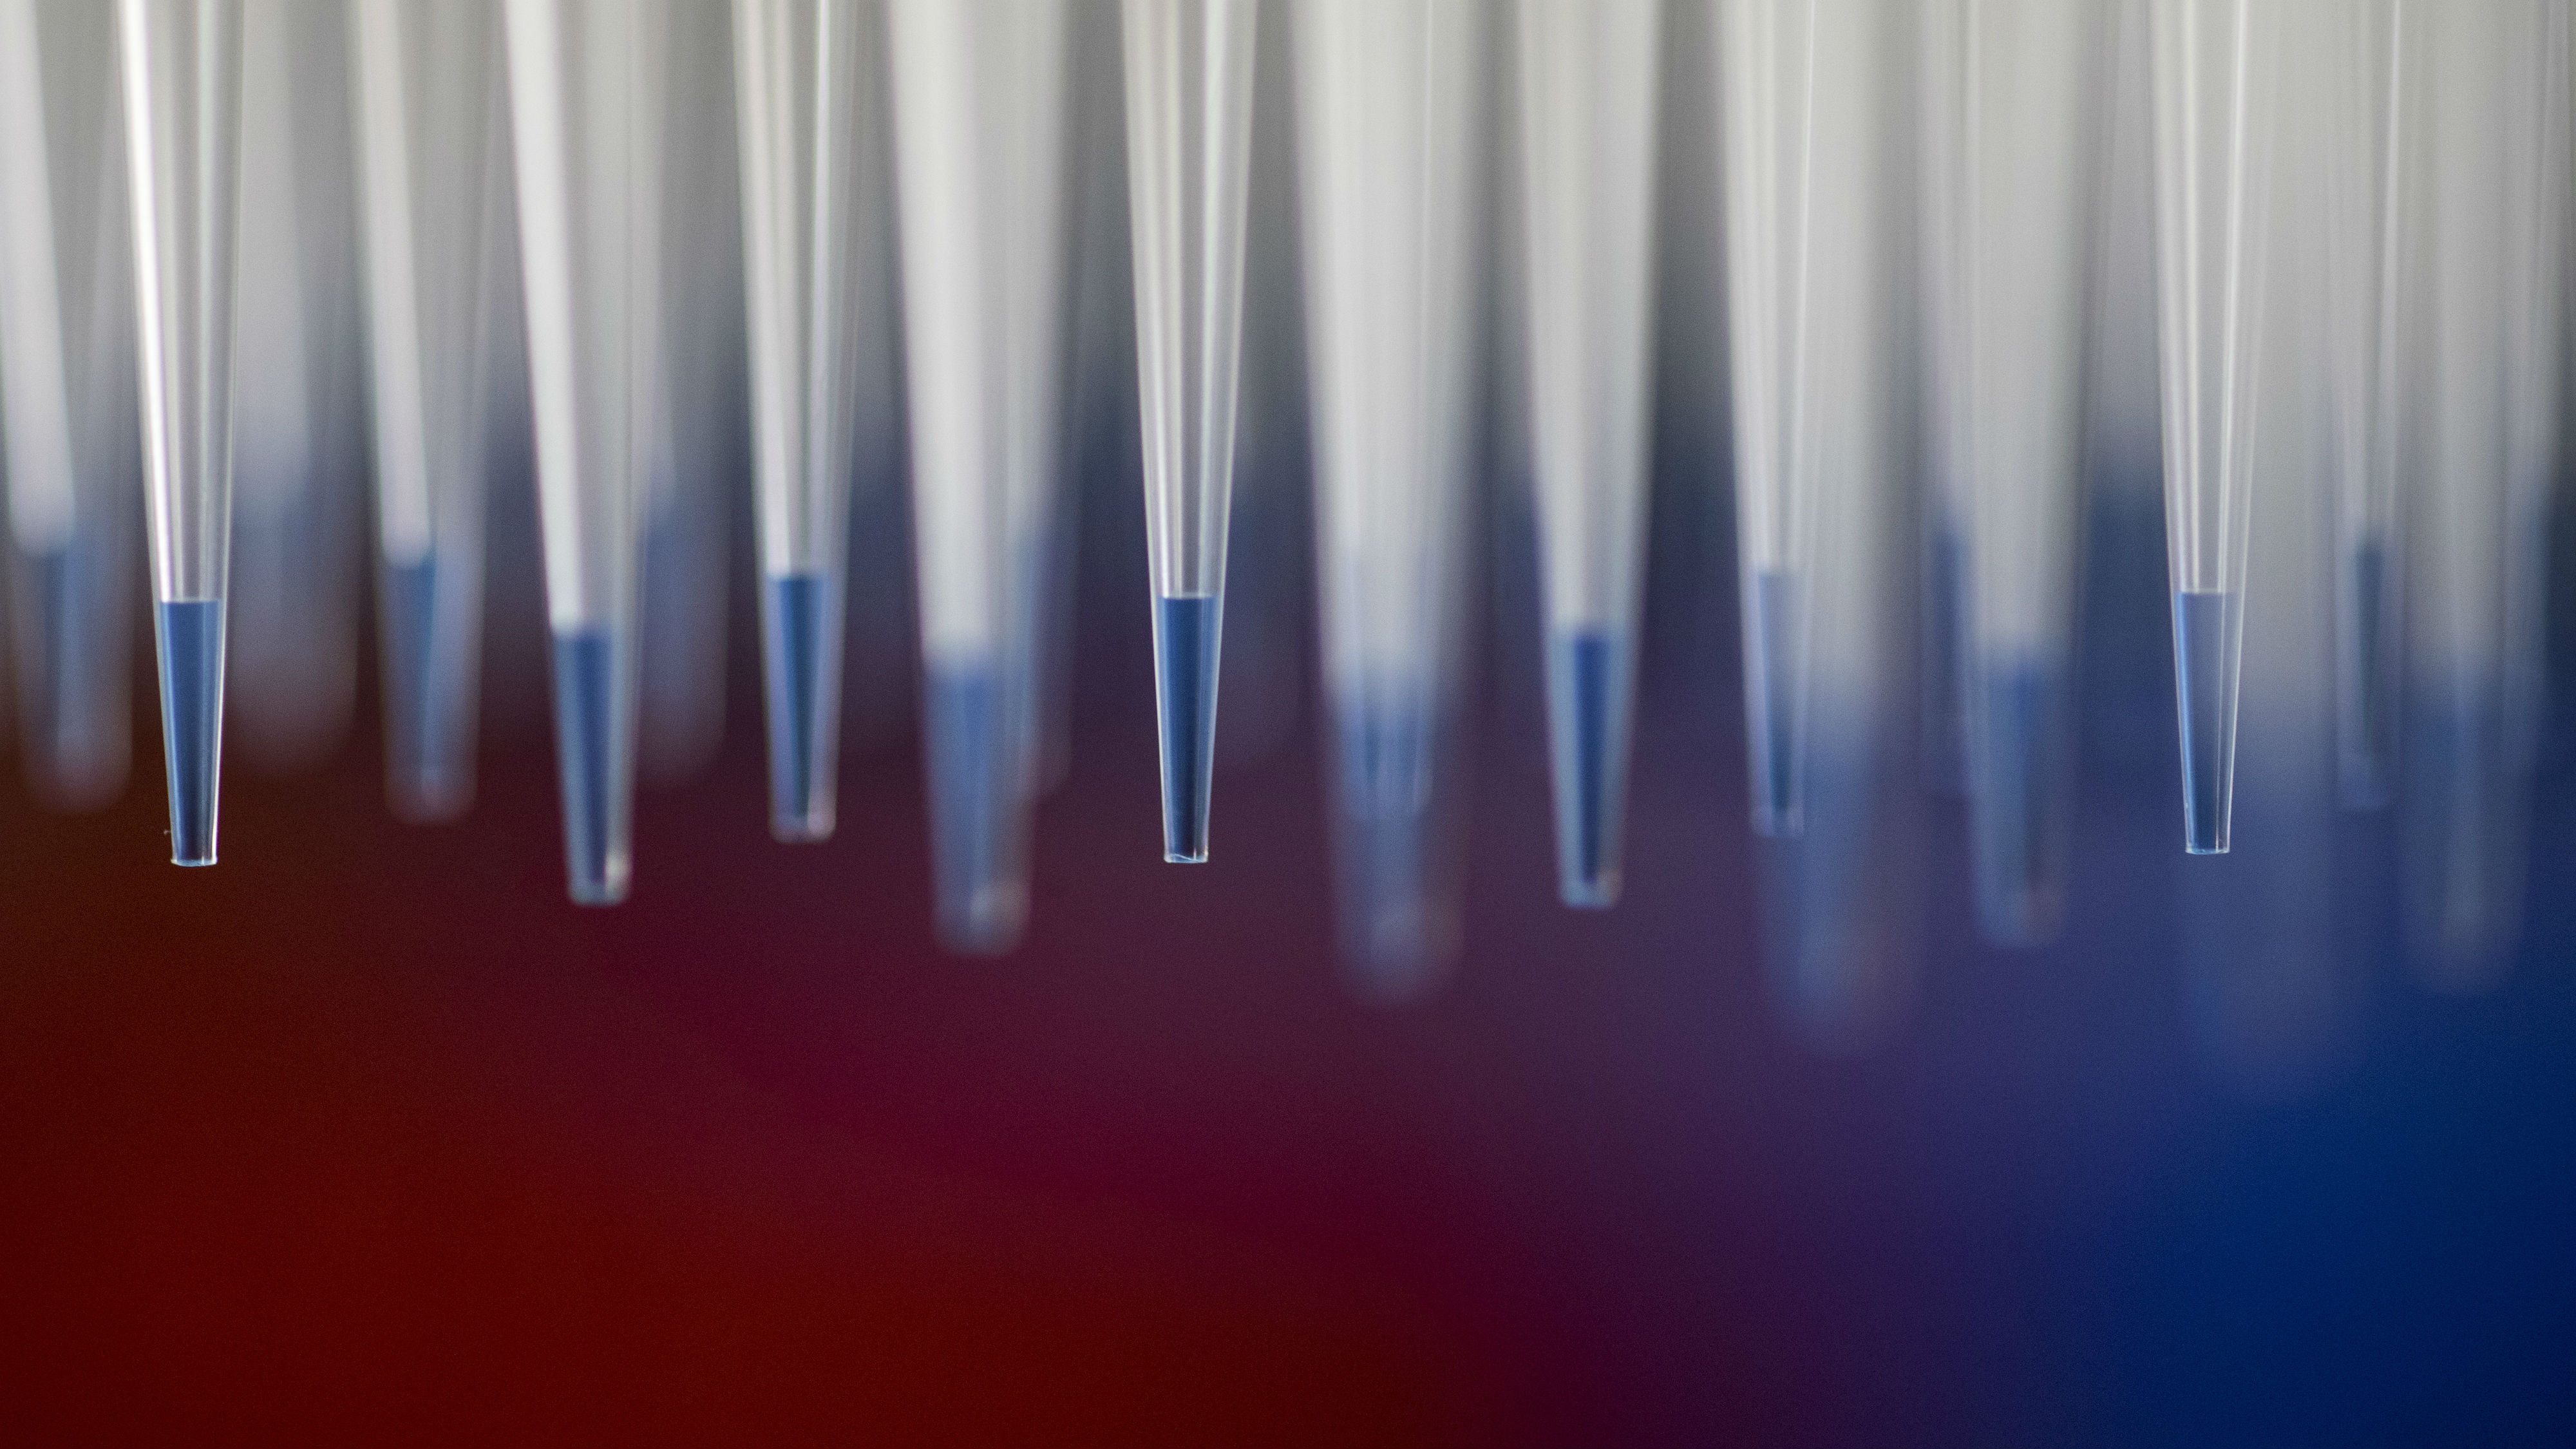 rows of flu vaccines in pipettes